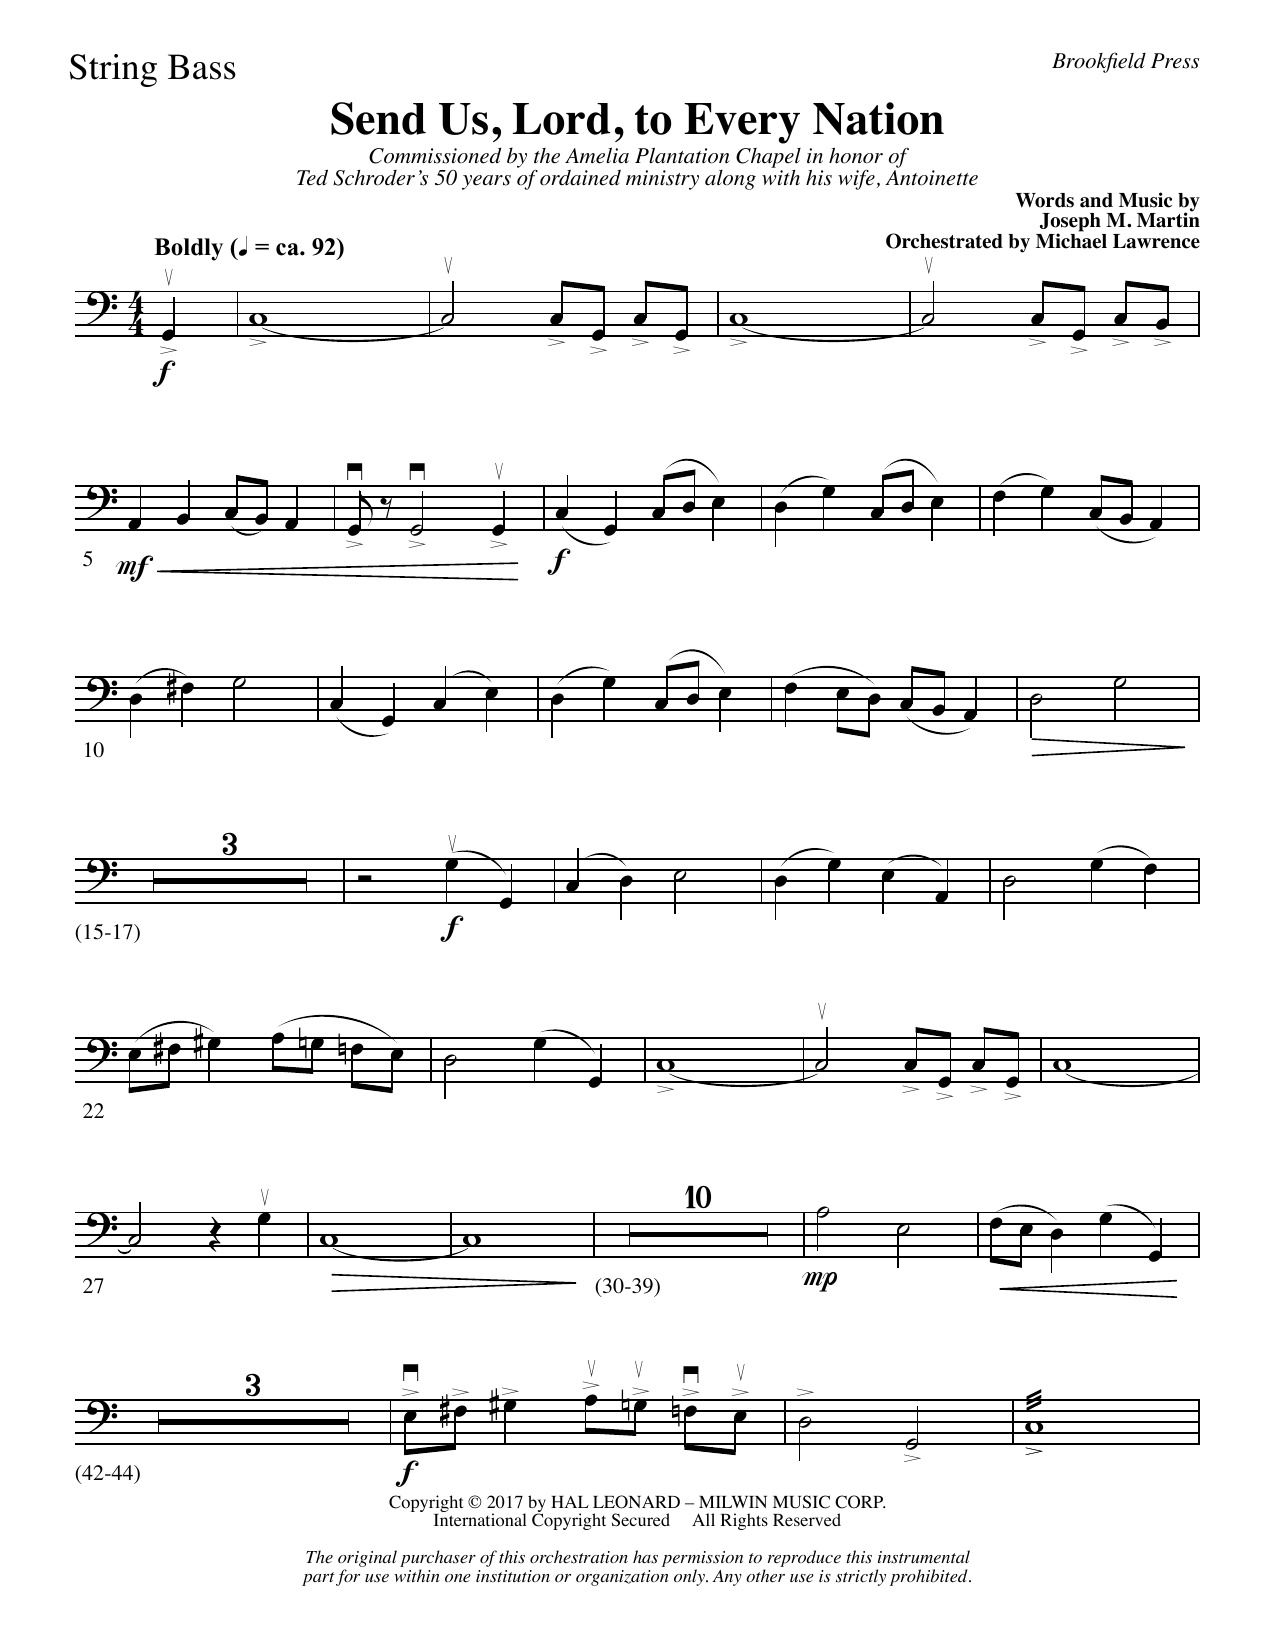 Joseph M. Martin Send Us, Lord, to Every Nation - String Bass sheet music notes and chords. Download Printable PDF.